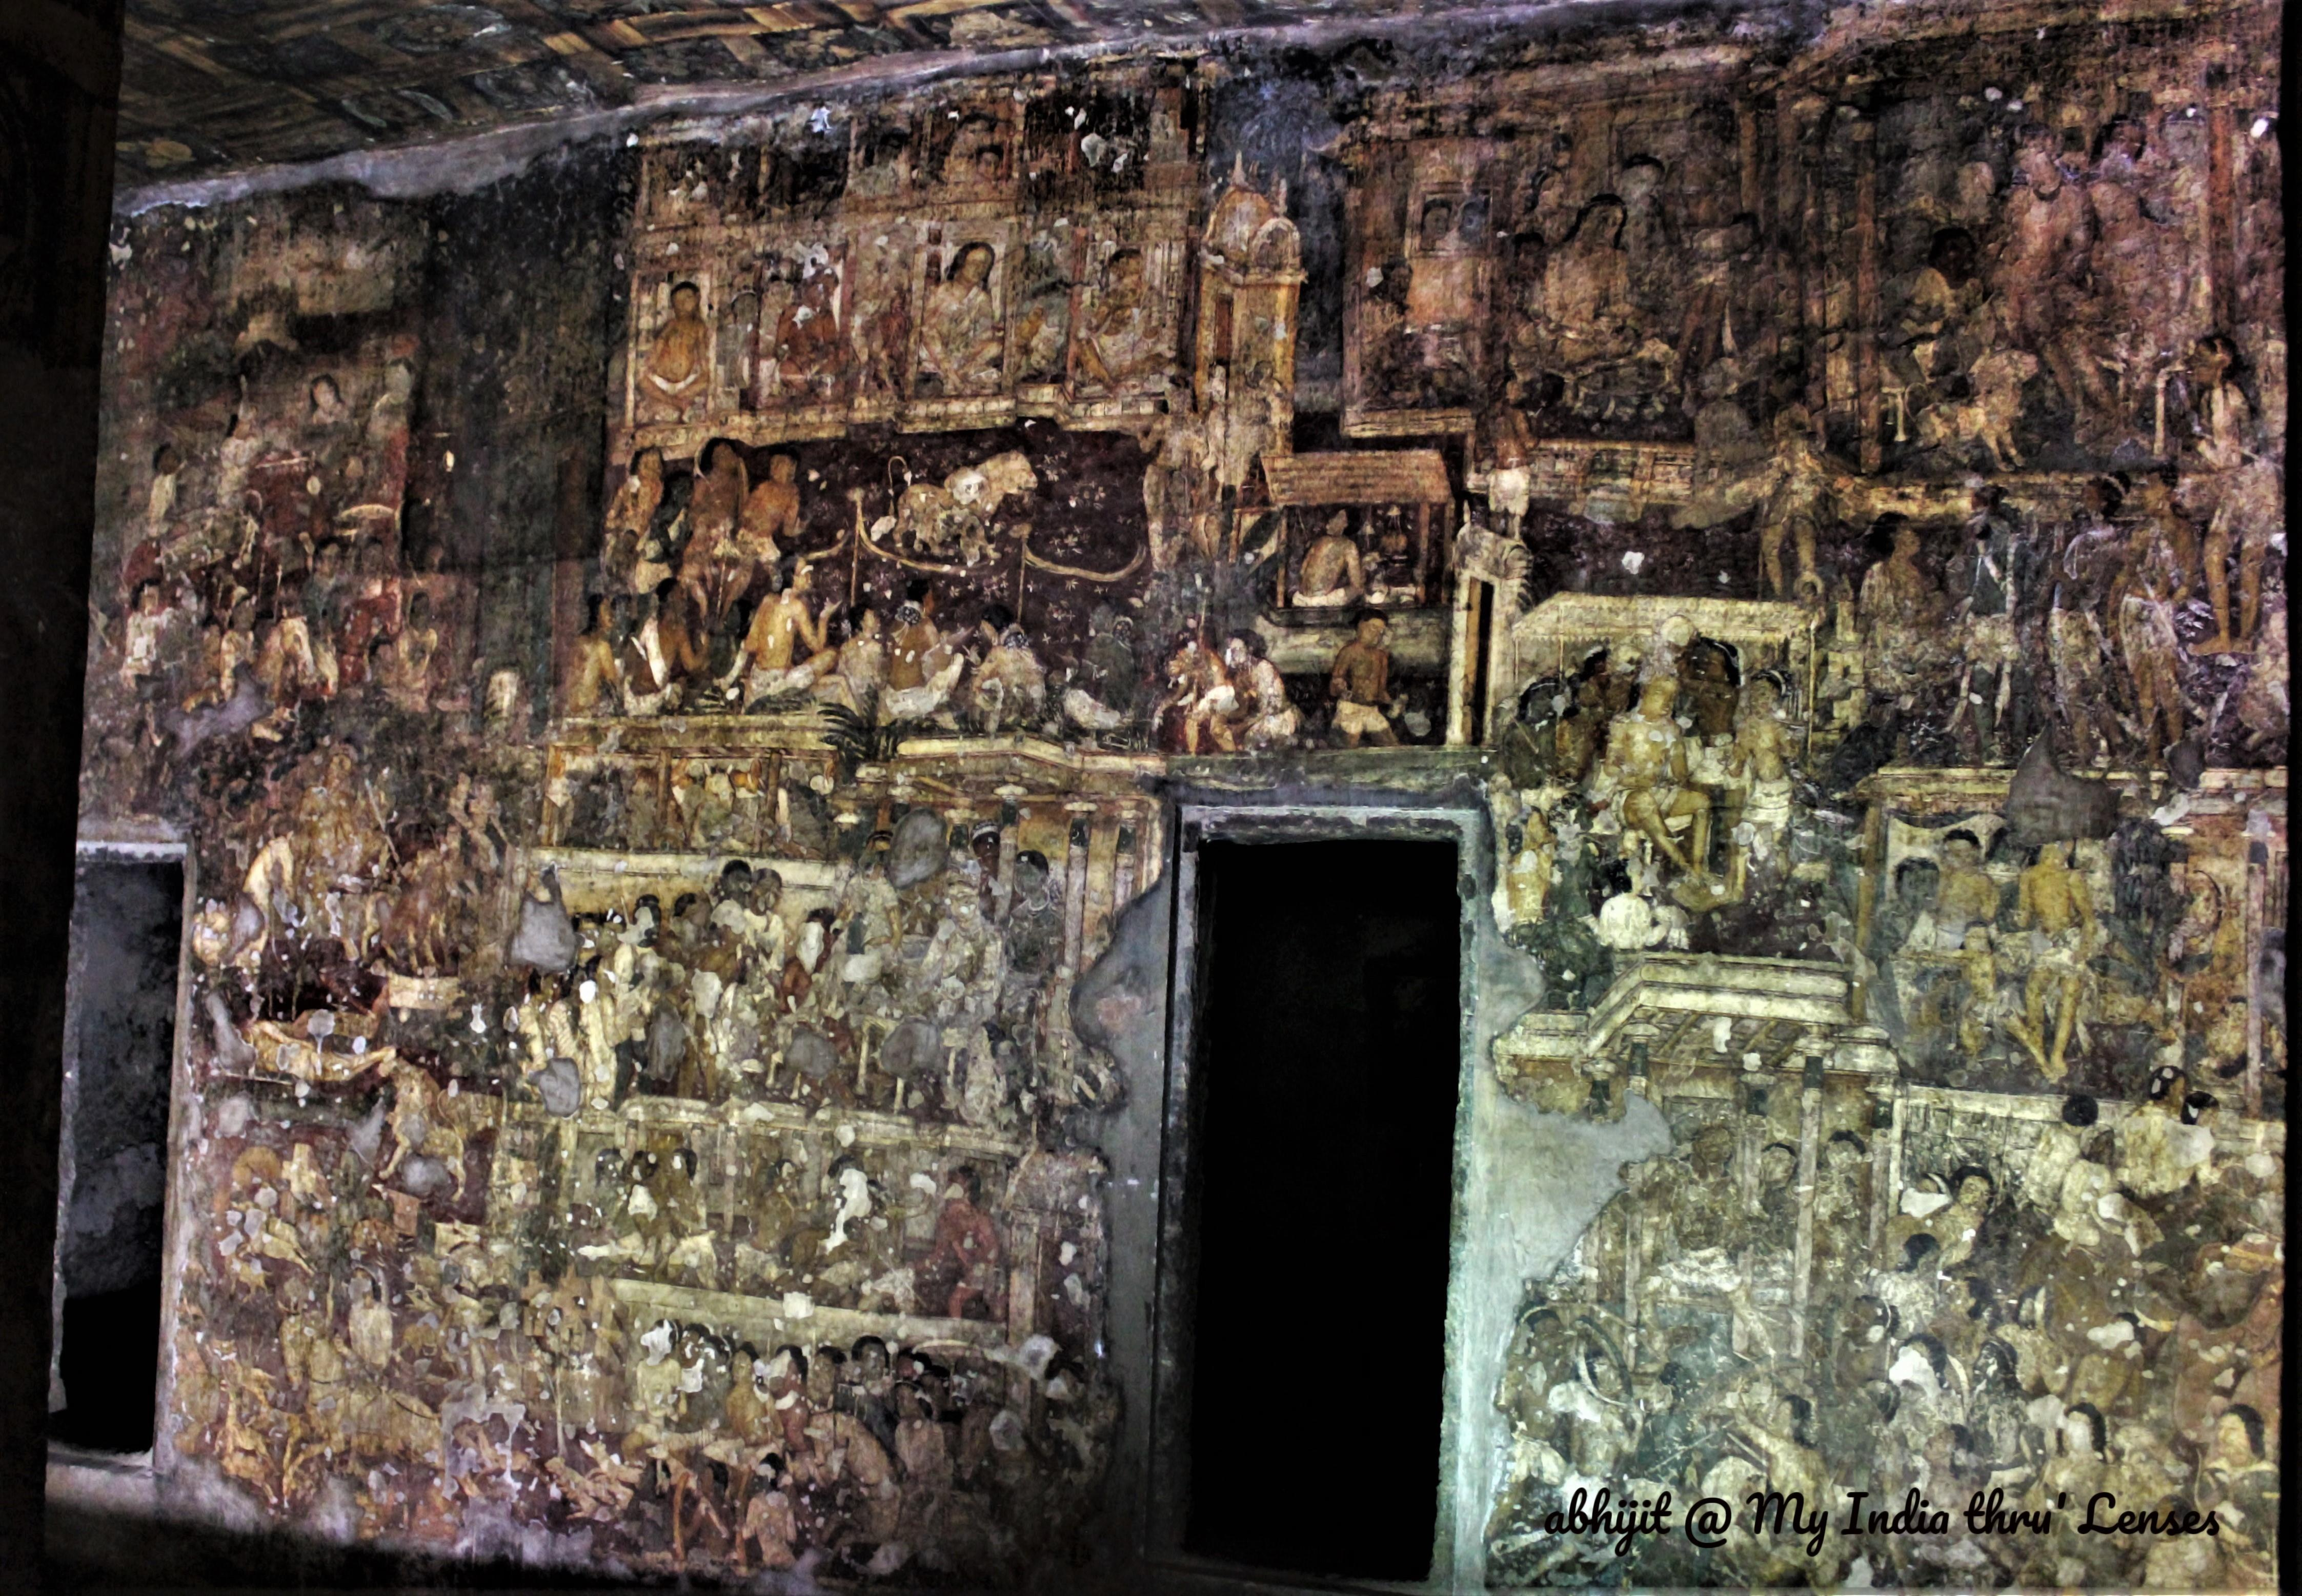 Murals on the walls, pillars and ceiling of Cave 17